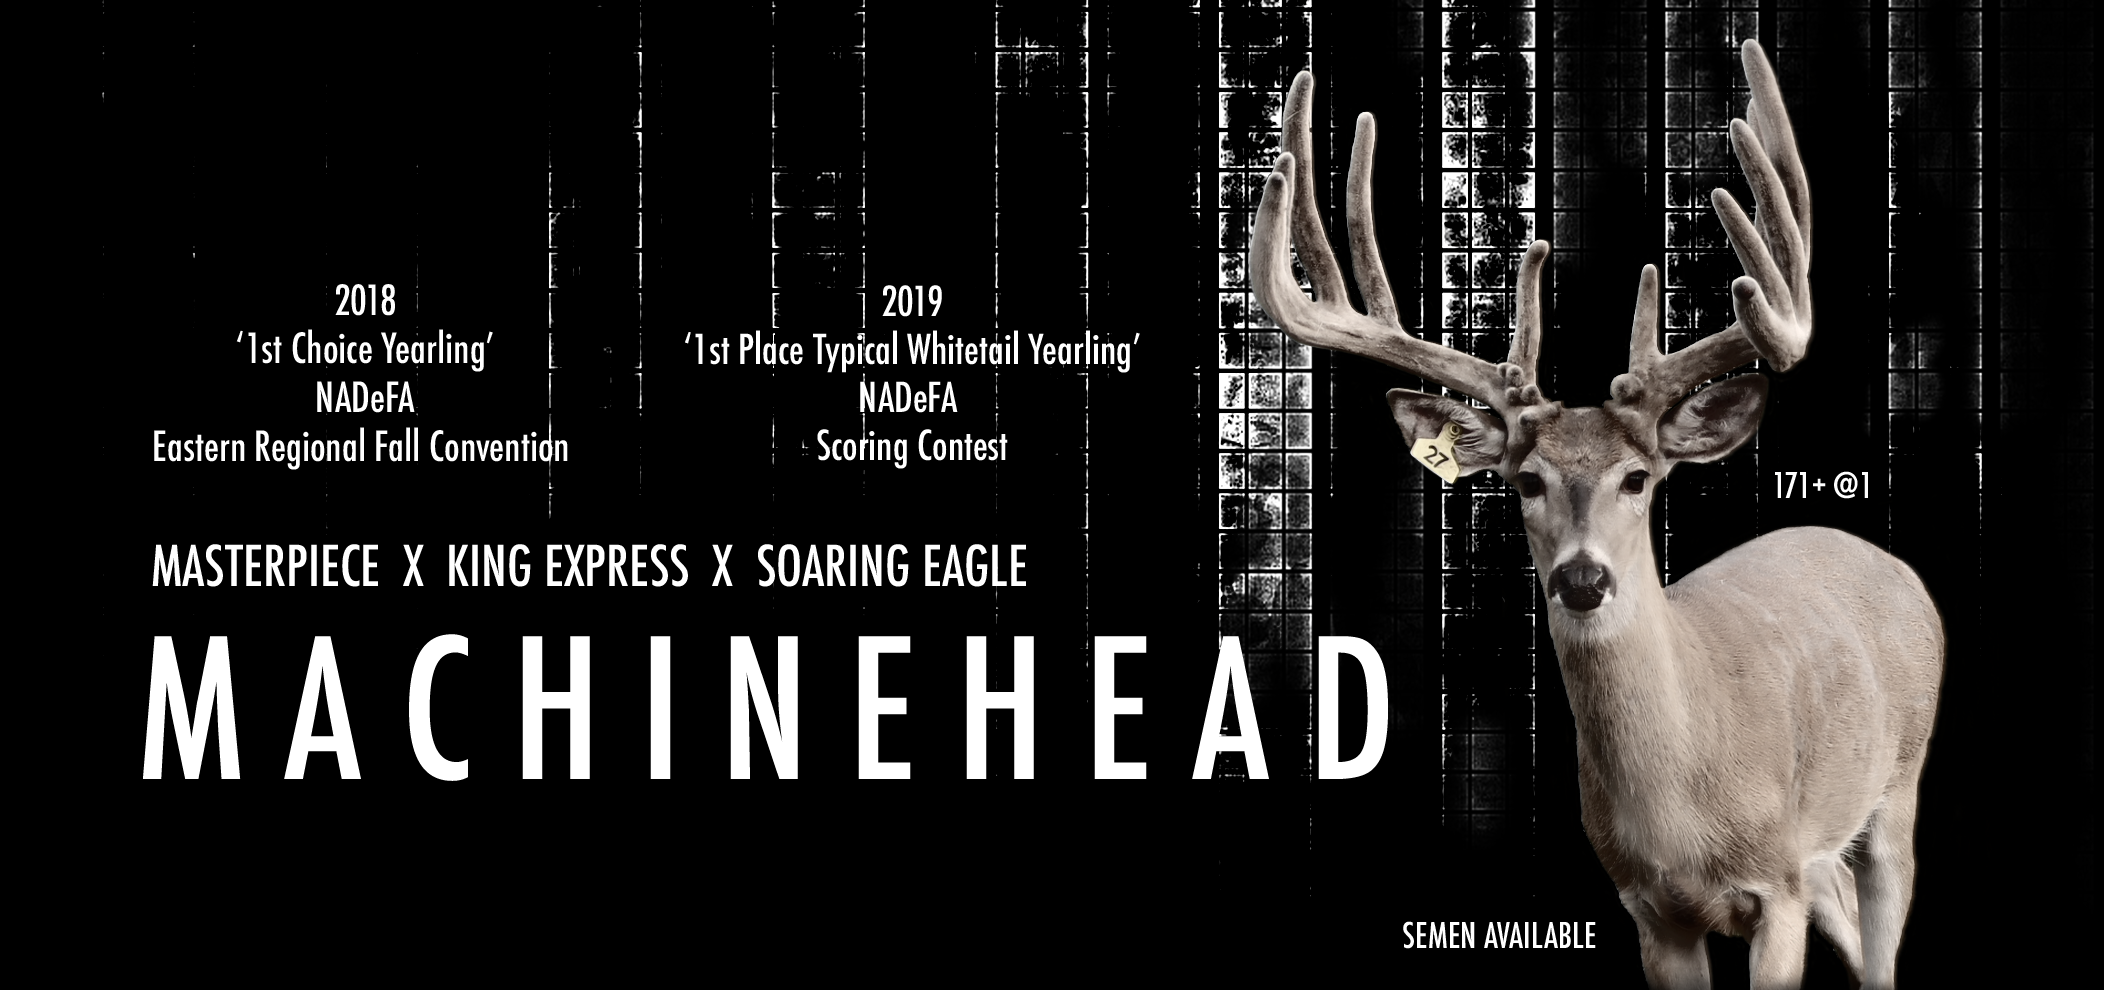 Machinehead Ad for web 04232019.png